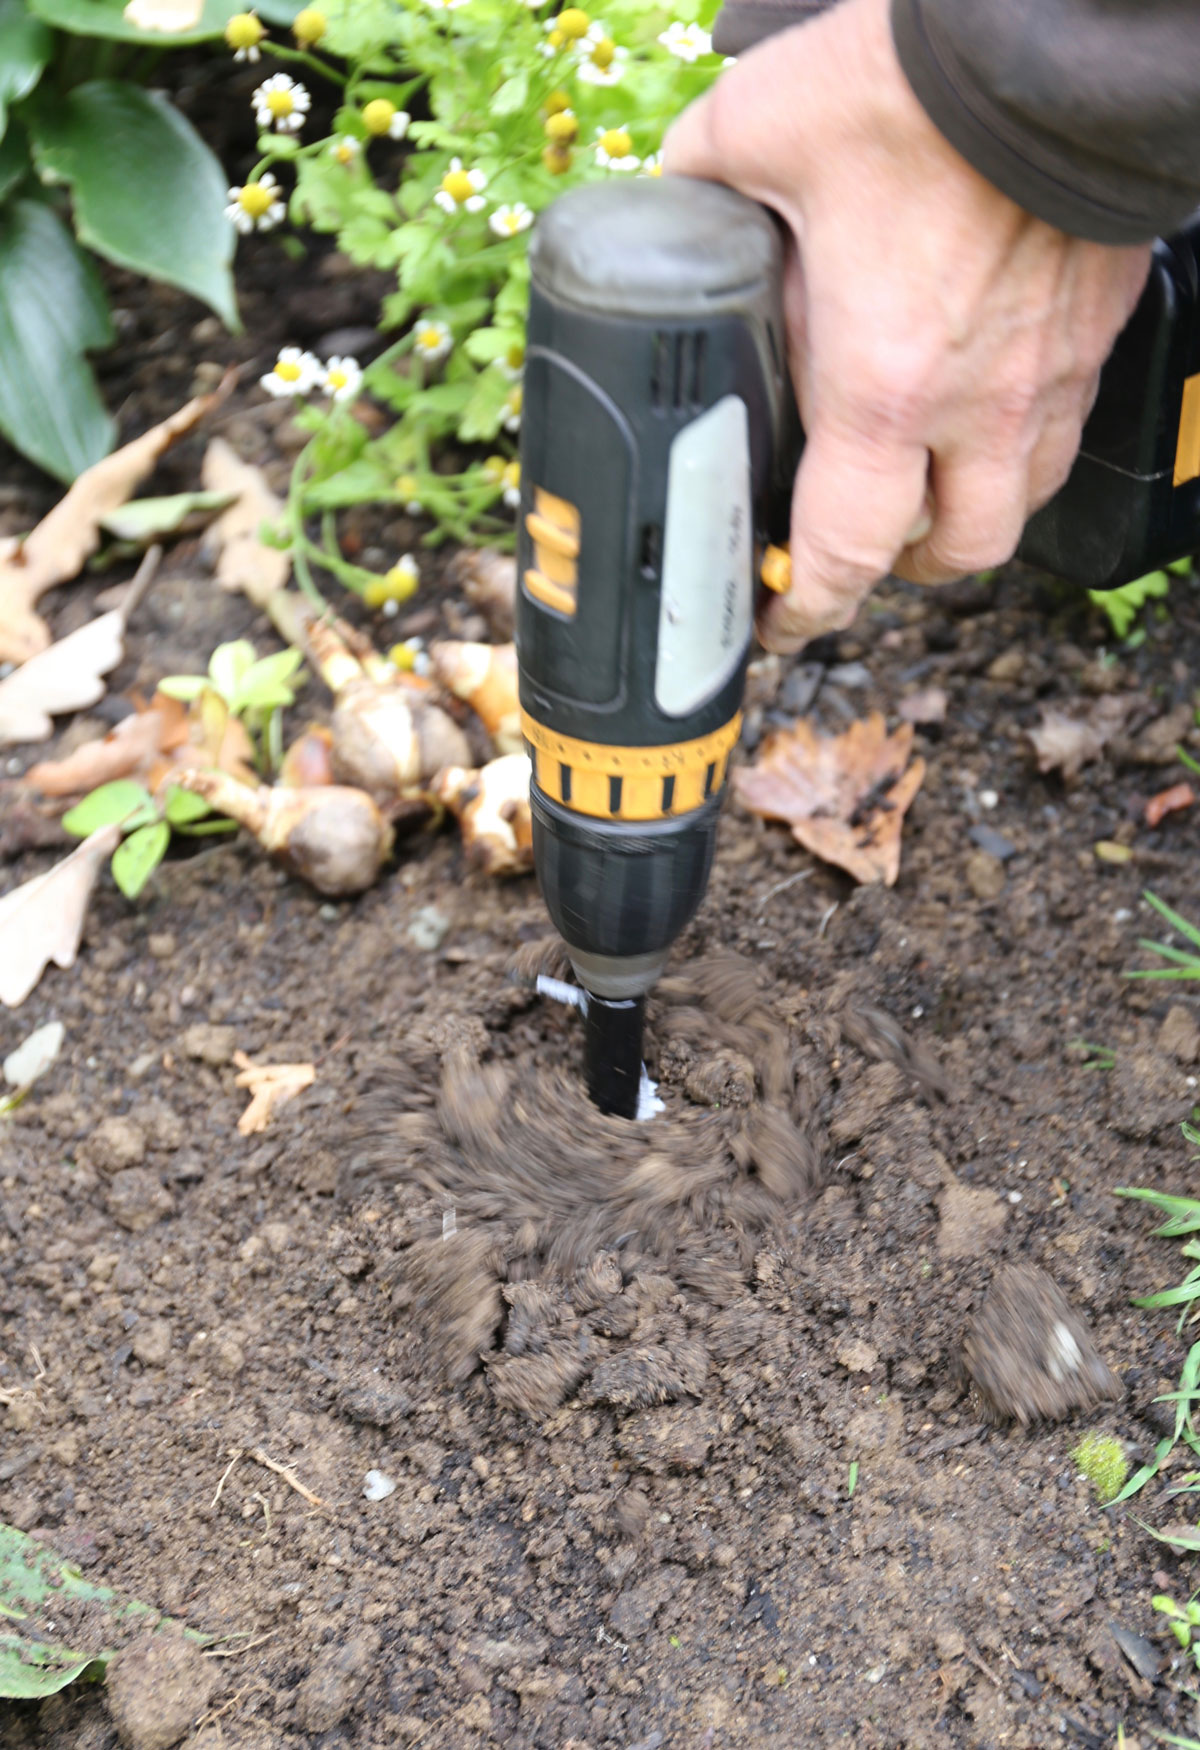 Planting Flower Bulbs with a Soil Auger and Power Drill - Longfield Gardens